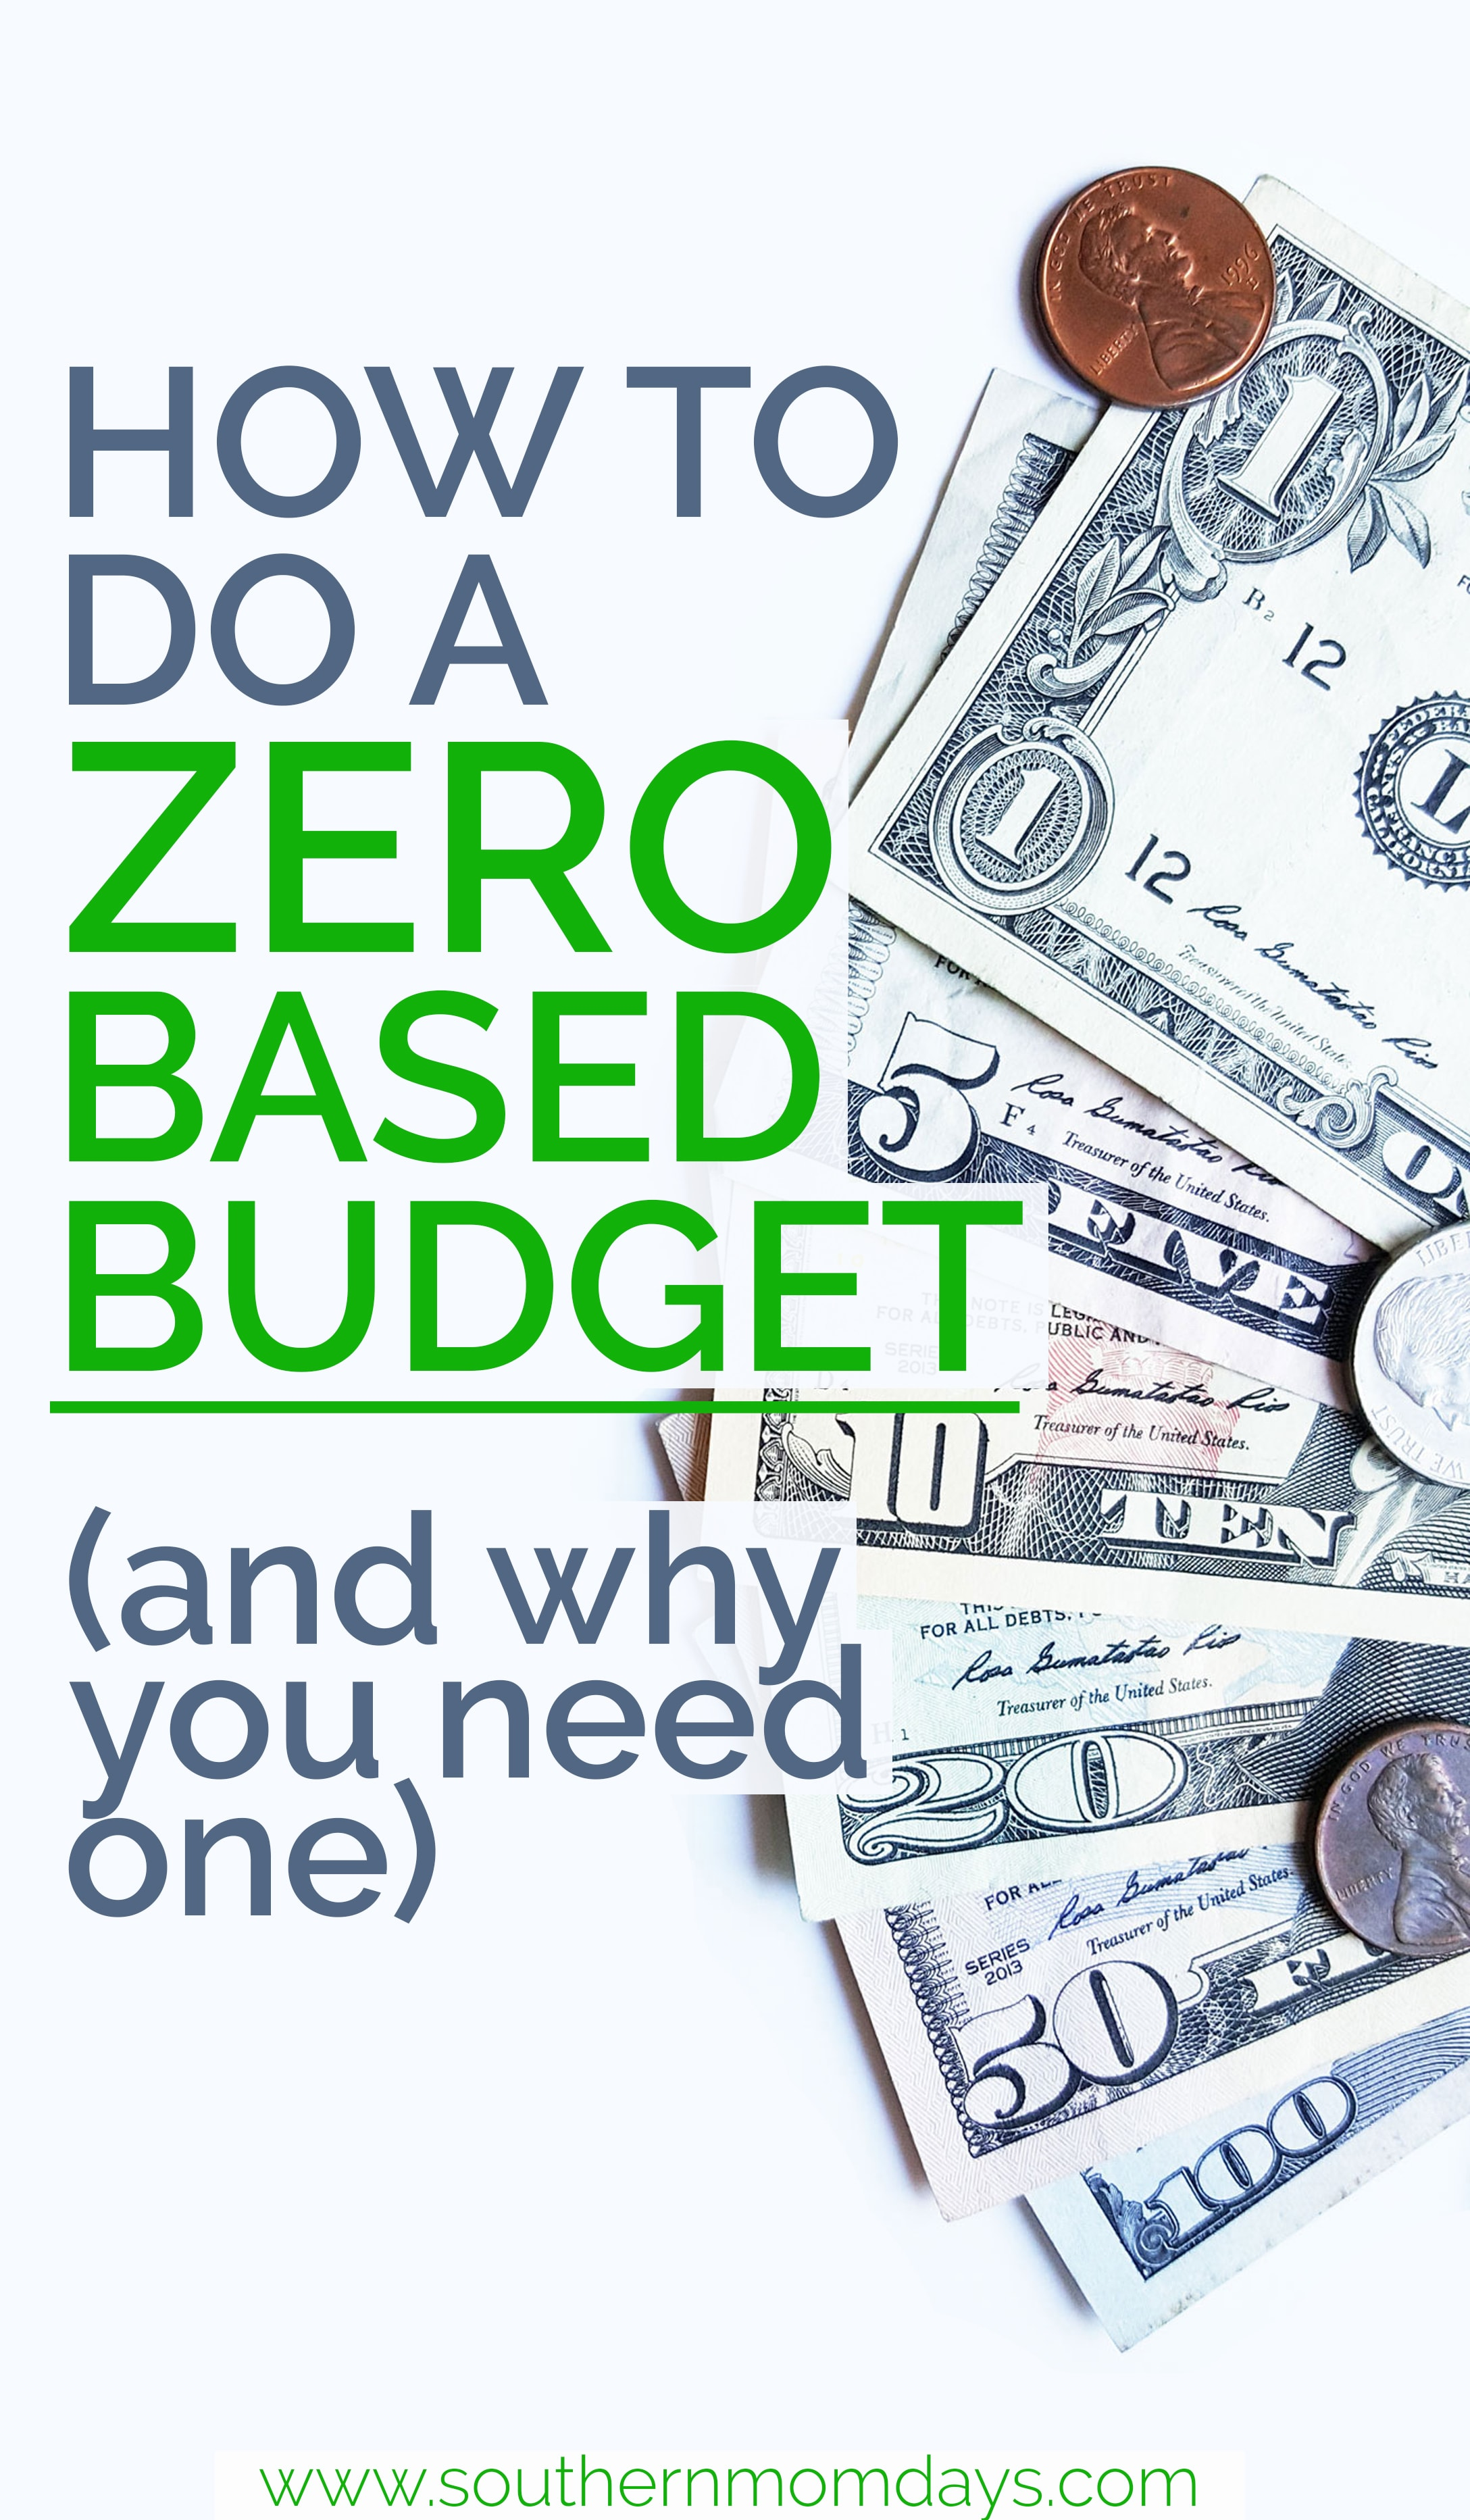 How to do a zero-based budget (and why!), featured on the Southern Momdays blog